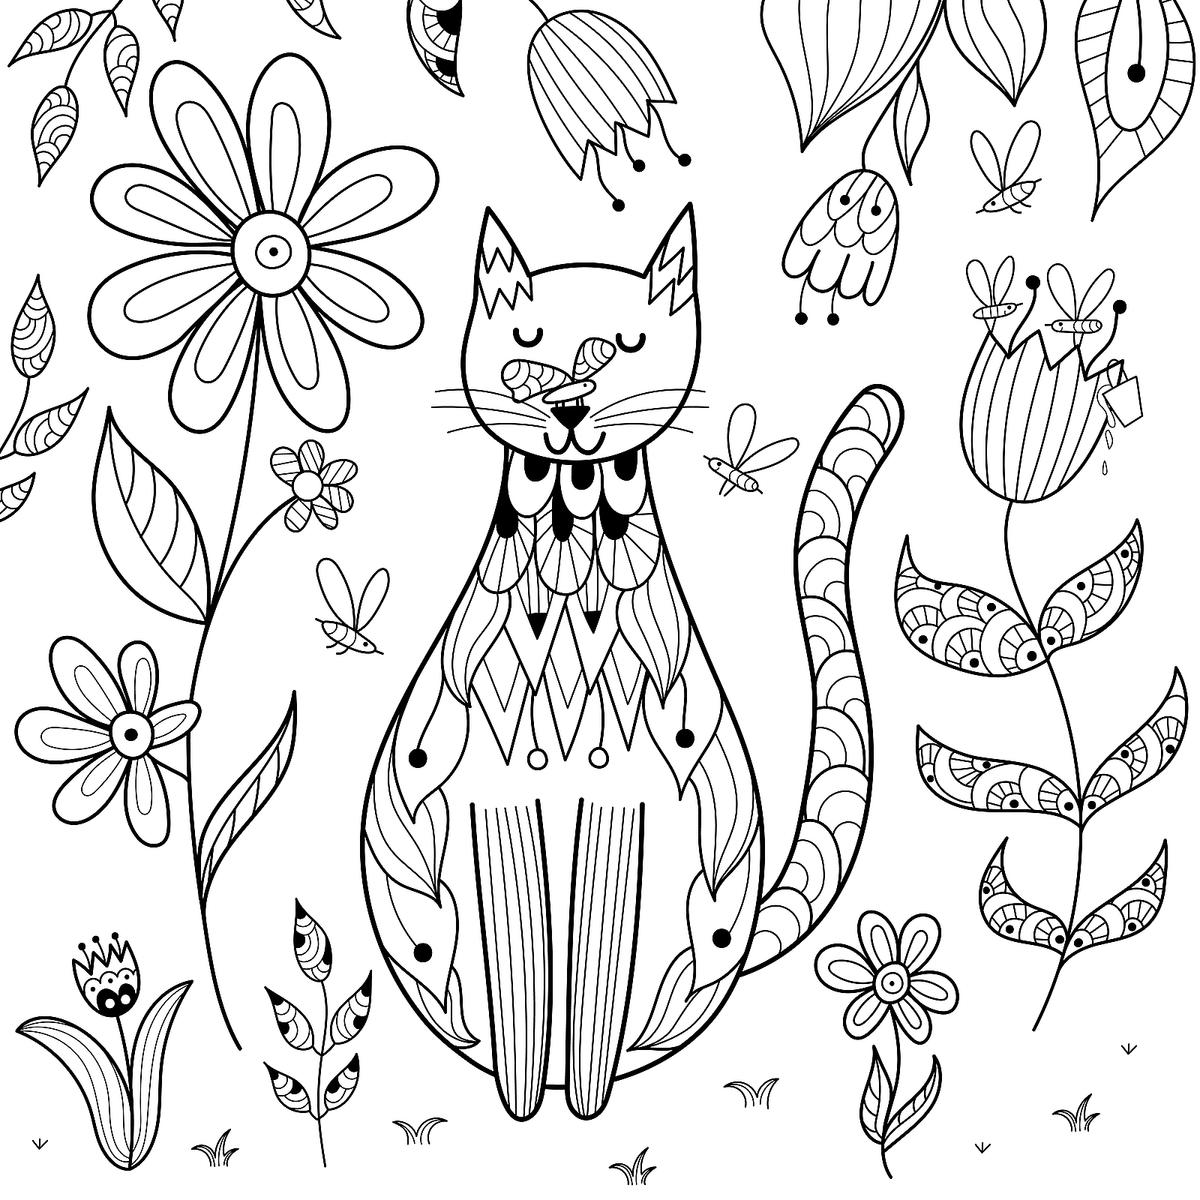 Free Cat Coloring Pages Purr Fect Printable Coloring Pages Of Cats For Cat Lovers Of All Ages Printables 30seconds Mom